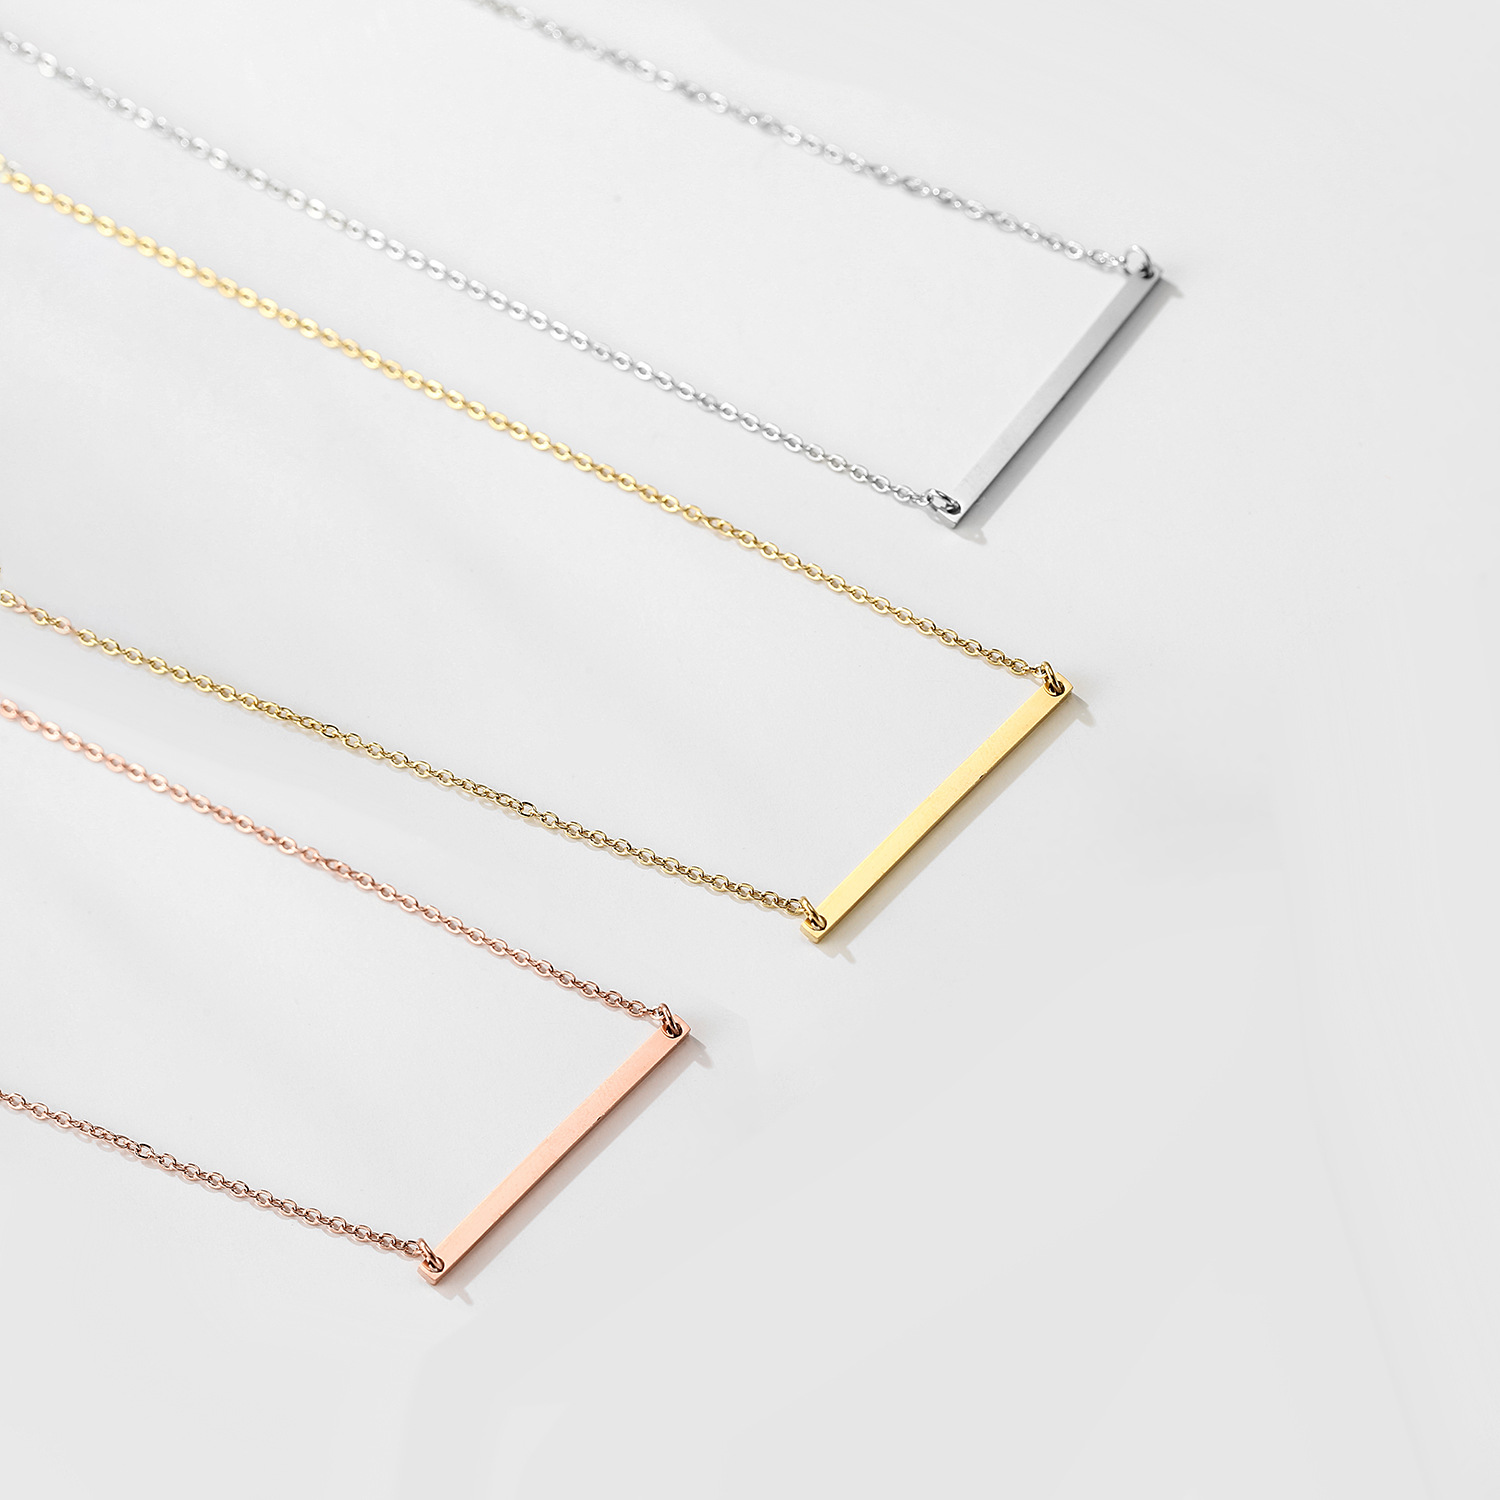 Necklace Geometric Round Brand Glossy Straight Necklace L316 Stainless Steel Three-piece Necklace Clavicle wholesale nihaojewelry NHJJ221053